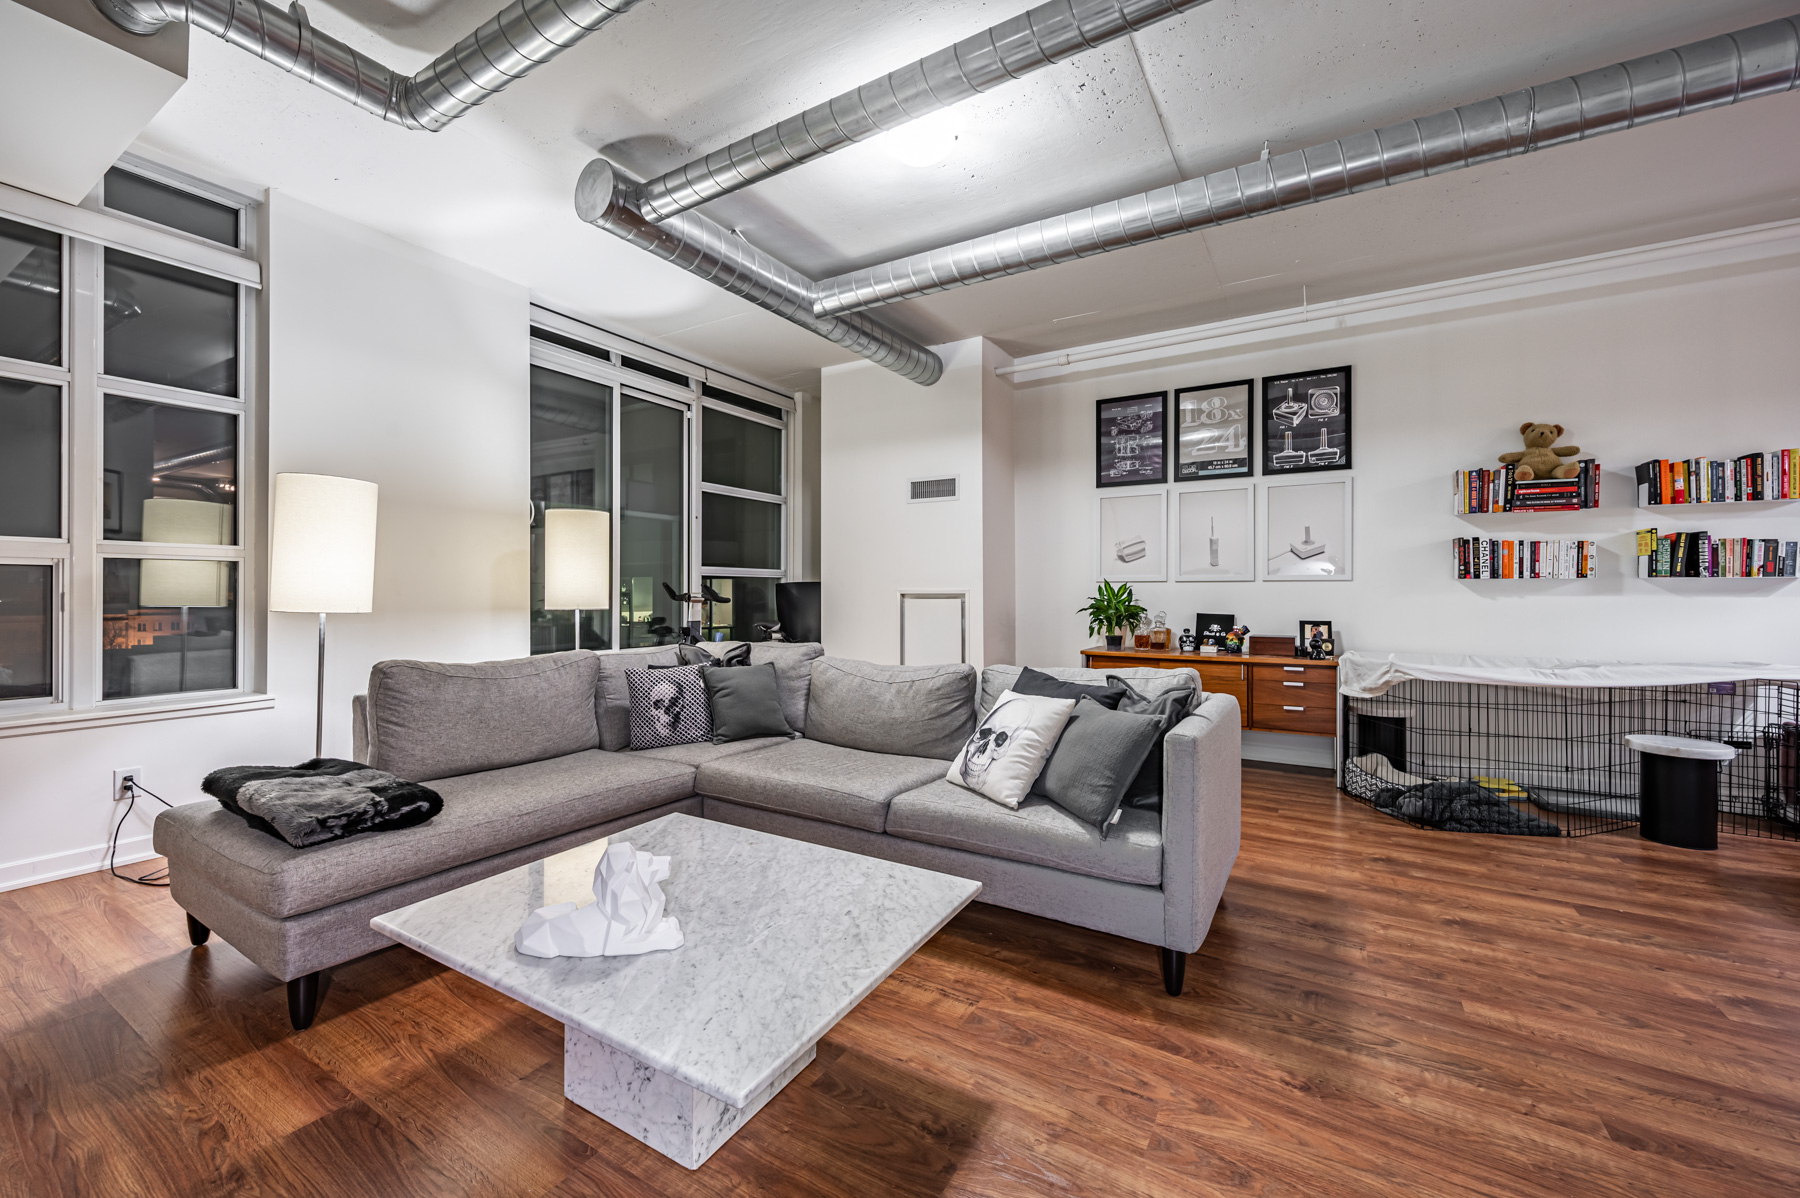 Condo living room with hardwood floors and gray walls – 380 Macpherson Ave Suite 517.